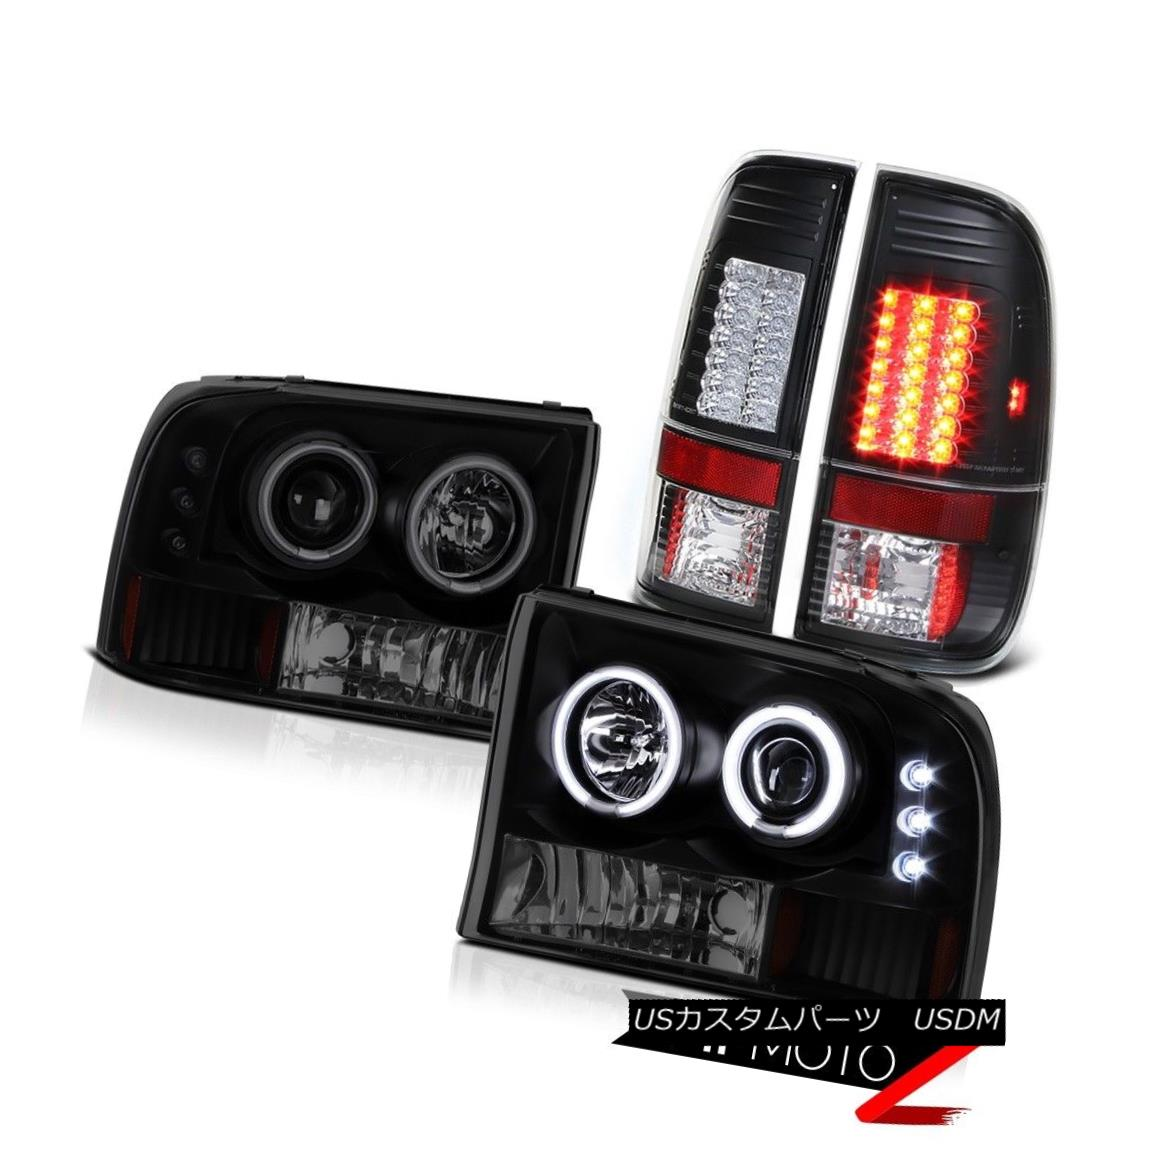 テールライト Darkest Black LED Smoke Tail Light Brake Lamp CCFL Halo DRL Angel EYe Headlights 最も暗い黒LED煙テールライトブレーキランプCCFL Halo DRL Angel EYeヘッドライト